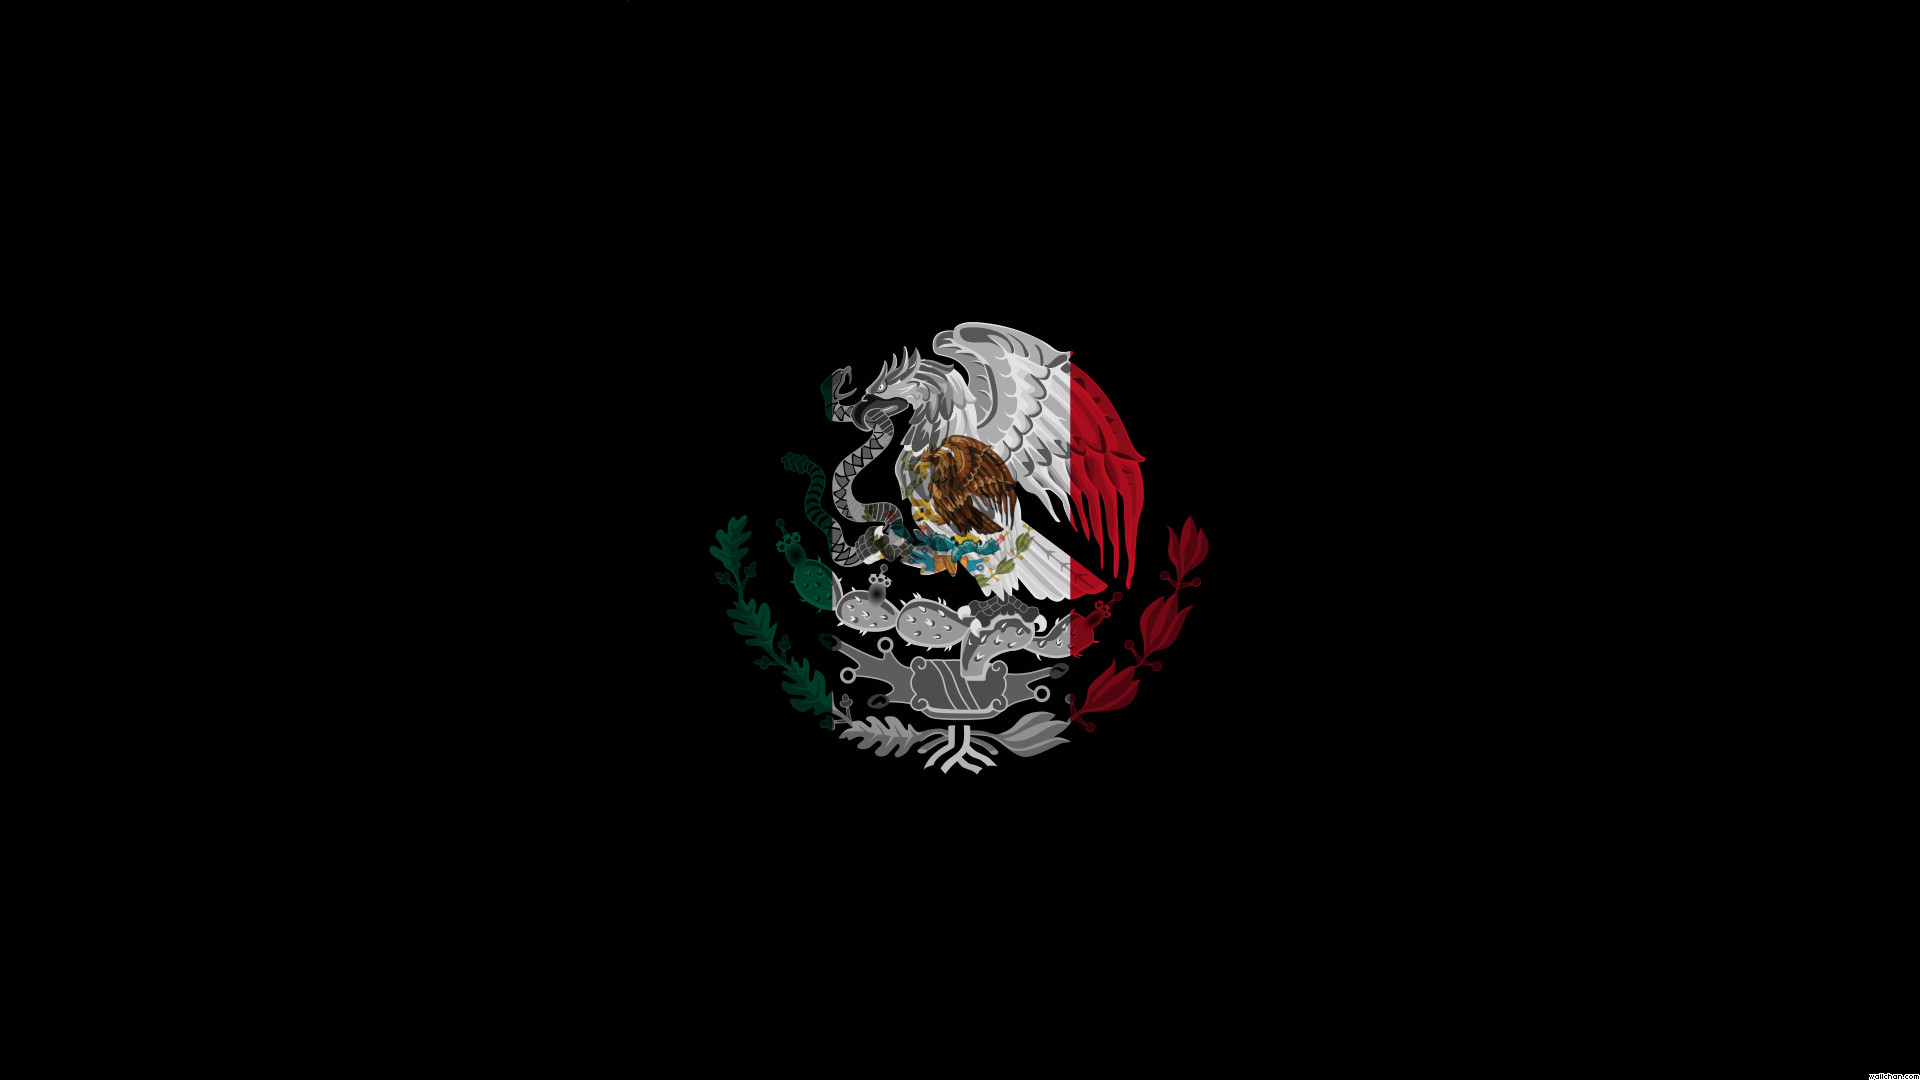 Mexican Pride Wallpaper 44 images 1920x1080